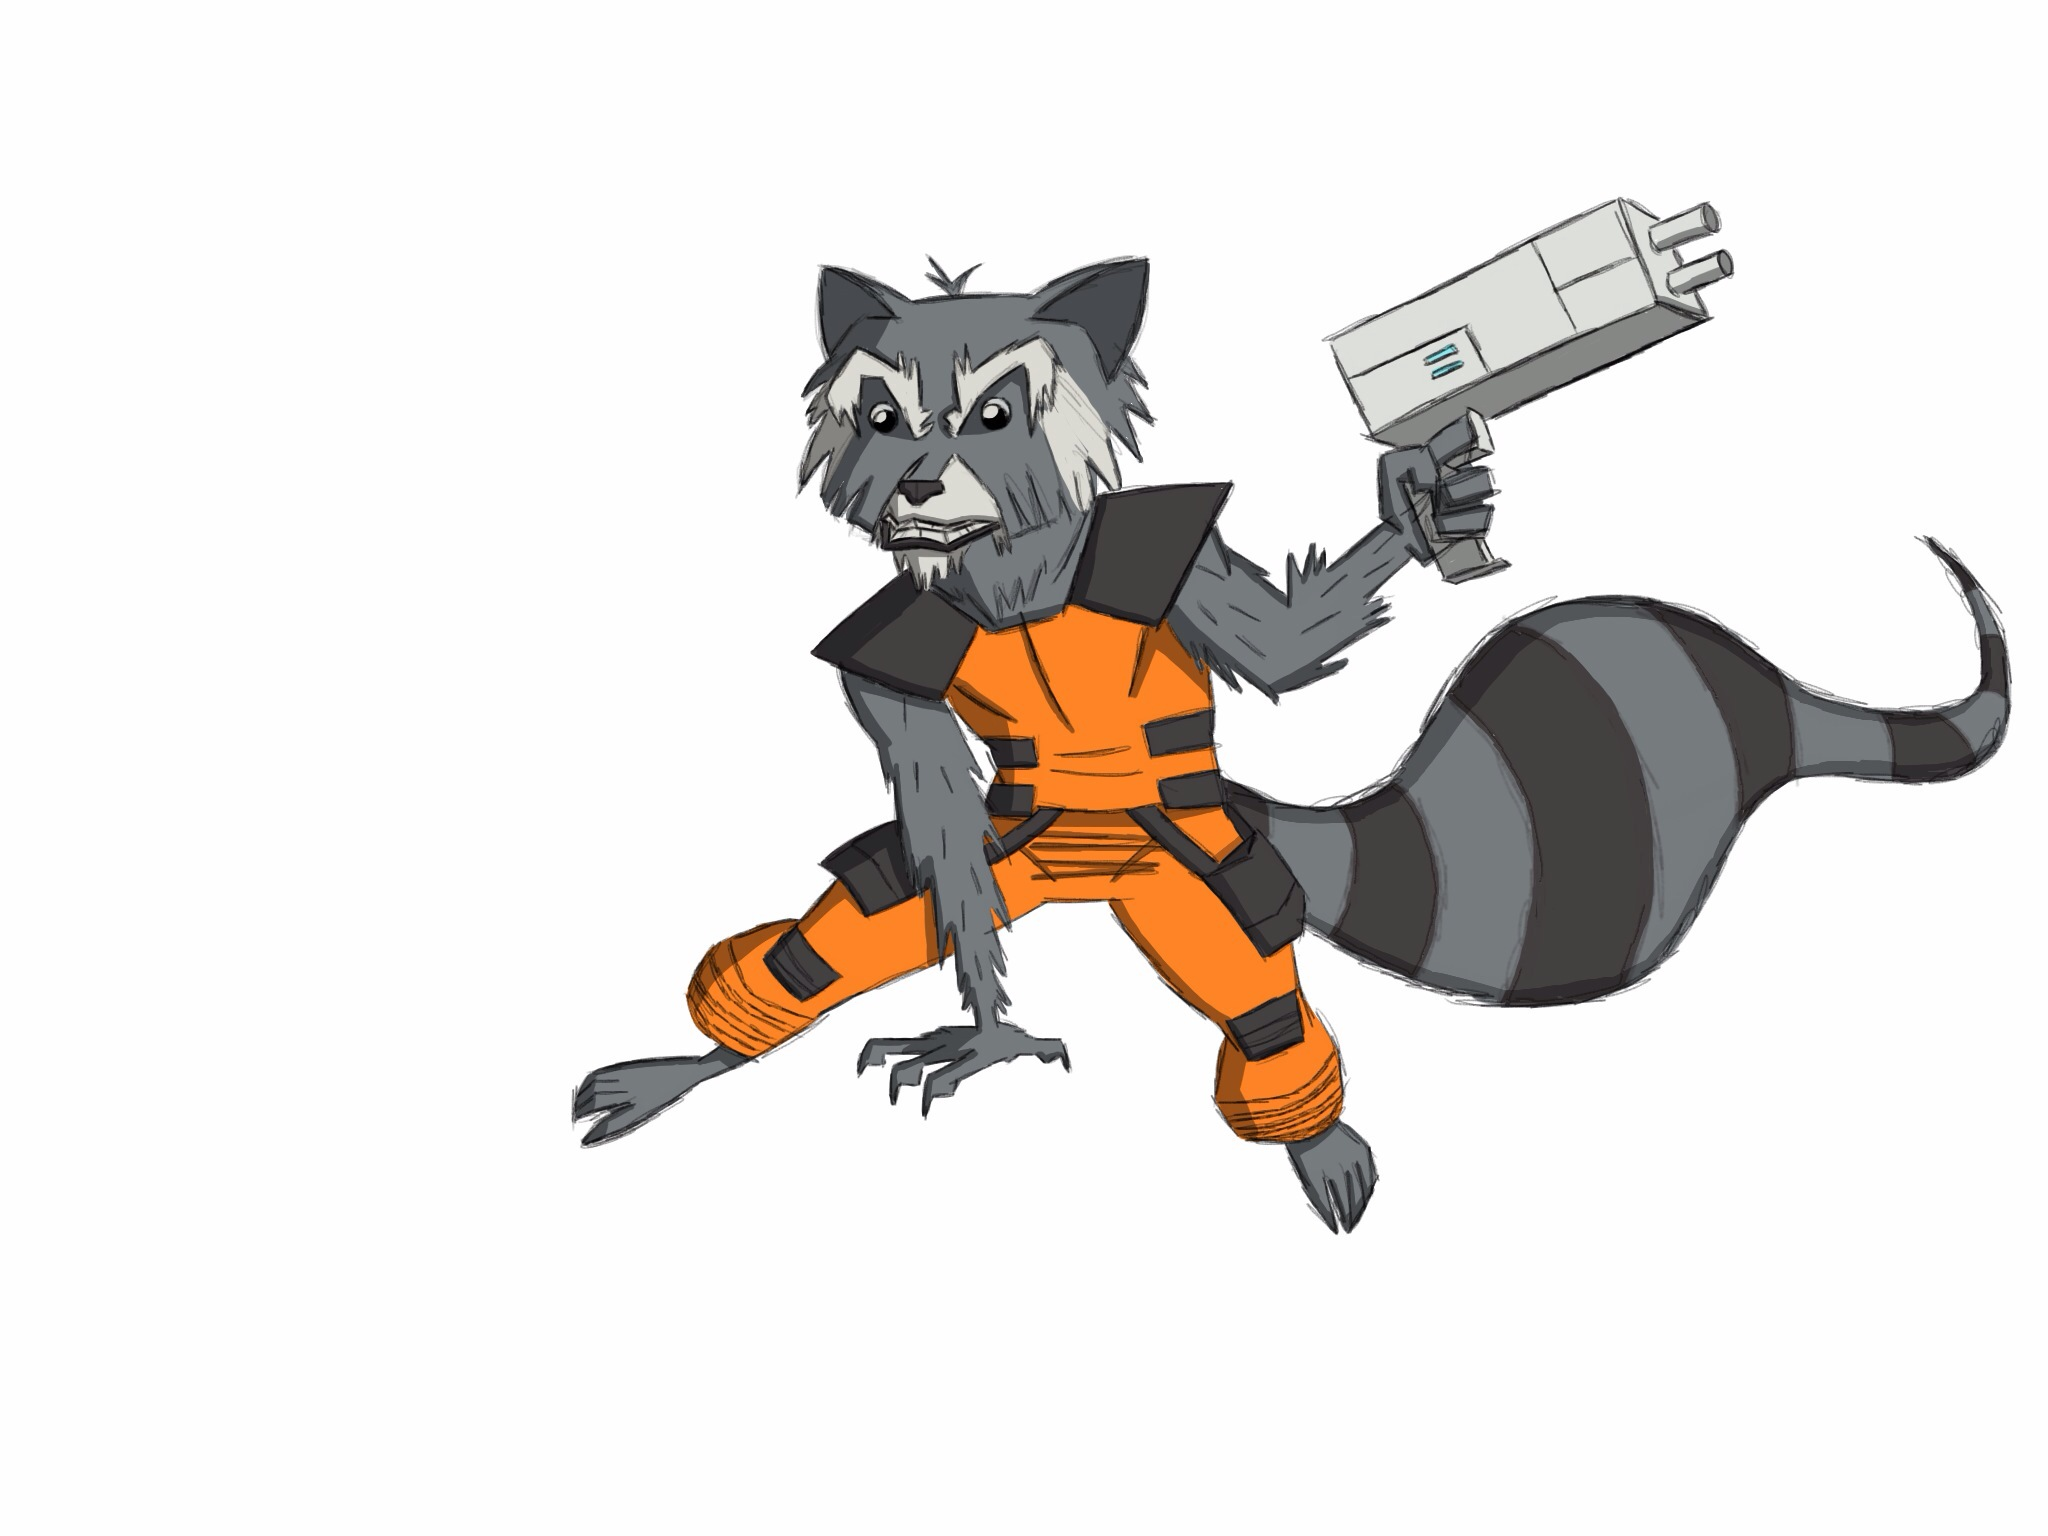 Drawn raccoon guardians the galaxy  #2: 20140305_182902000_iOS Speed Drawing